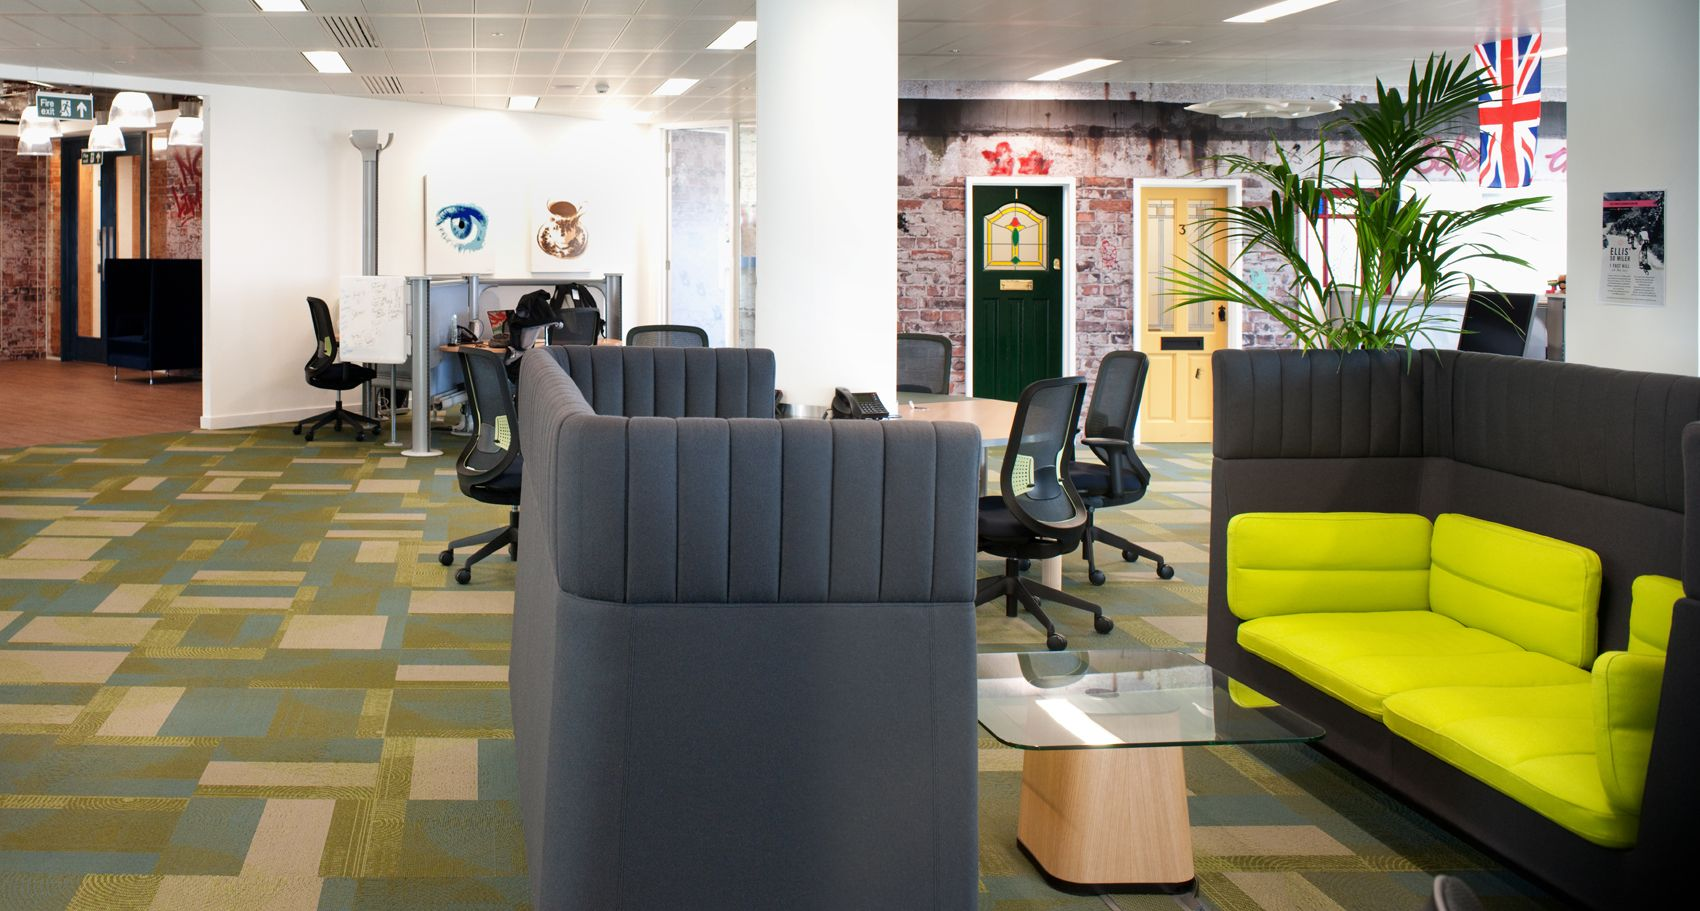 coolest office designs hot desk our office design for splunk was recently voted the coolest in uk these high backed booths offer space some independent work or an inspirational breakout and fun workplace